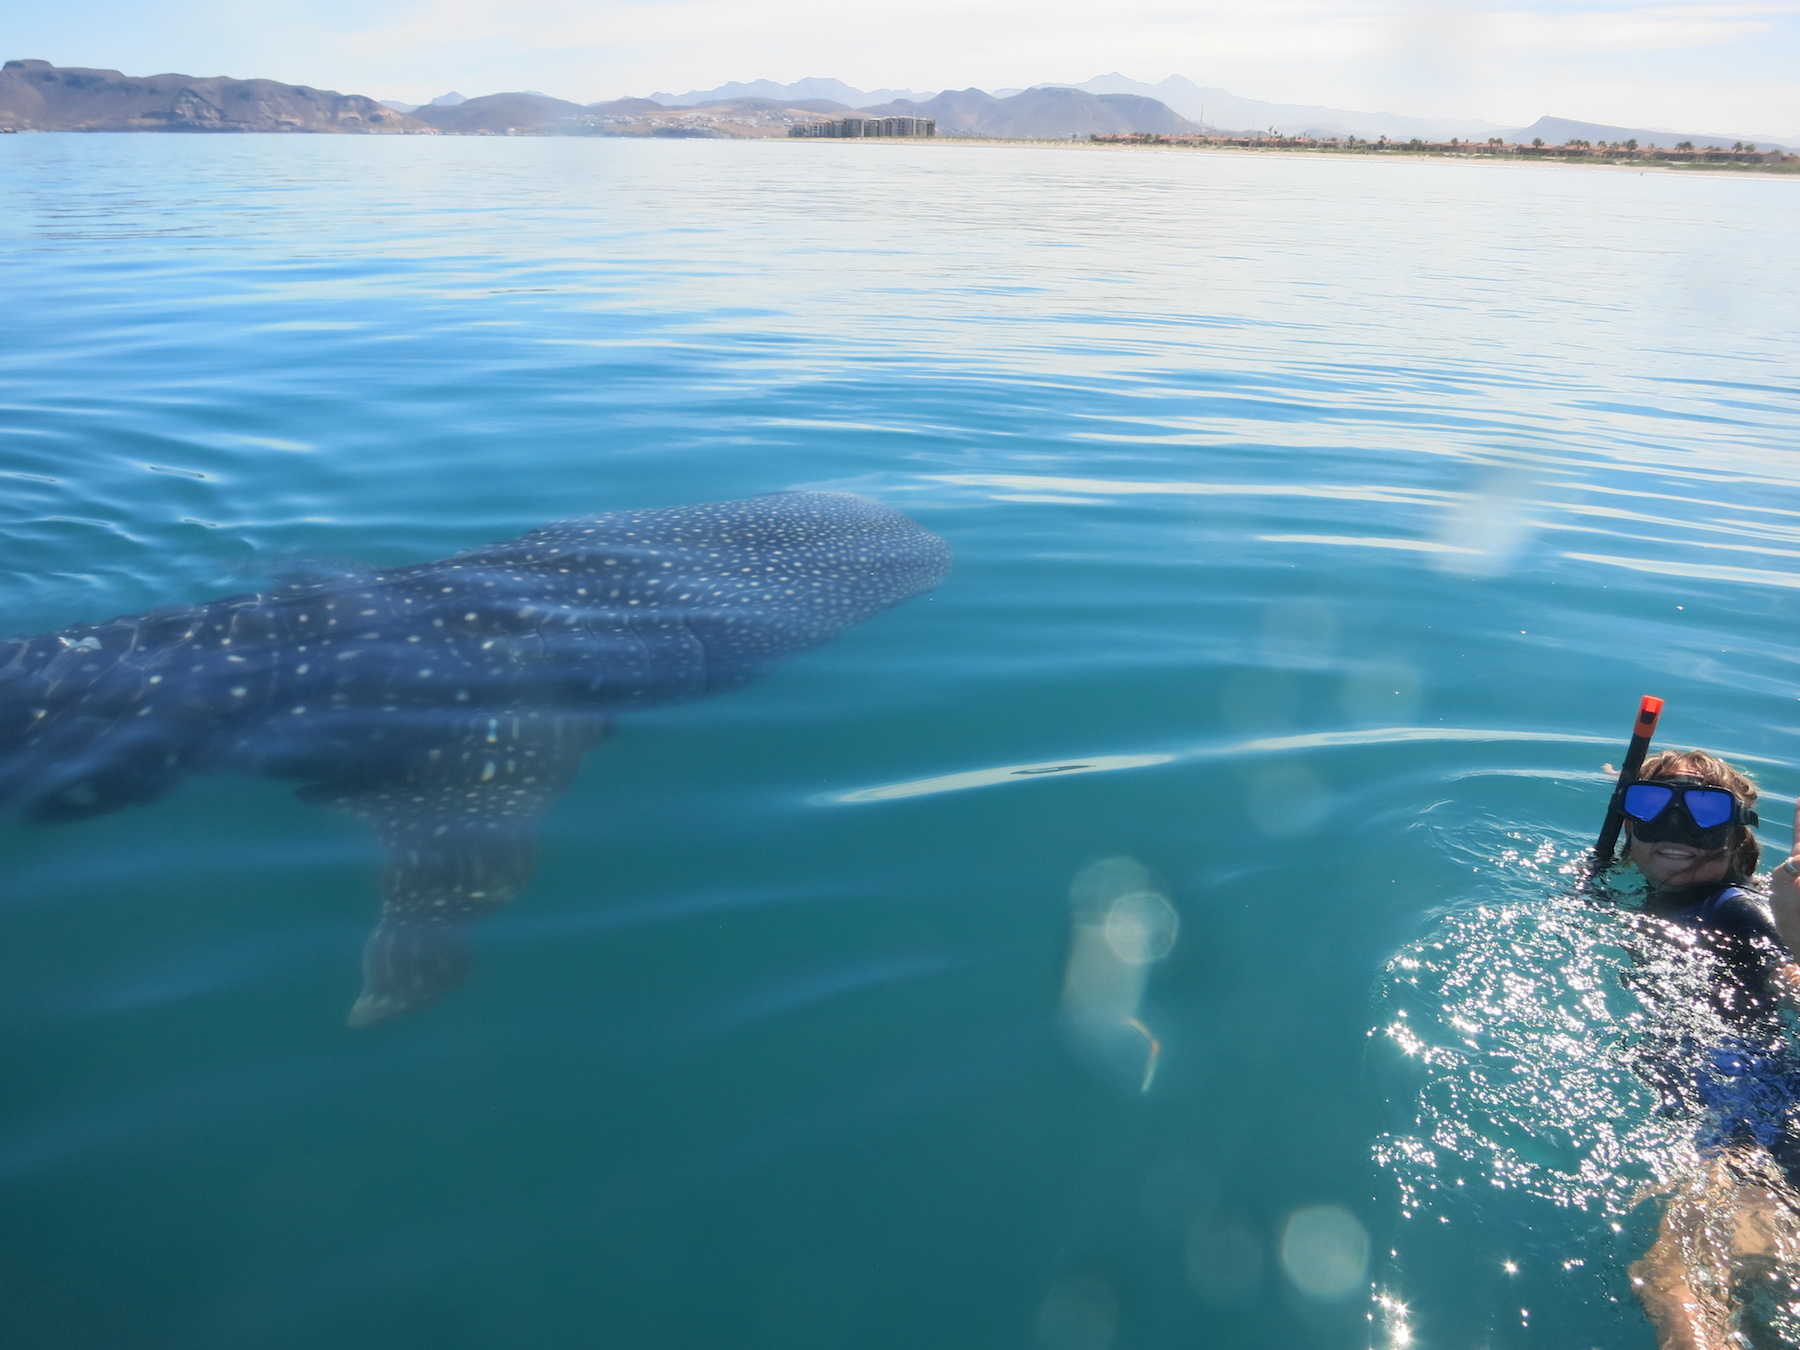 Day 6: Whale Shark Research - snorkel with these incredible giant fish